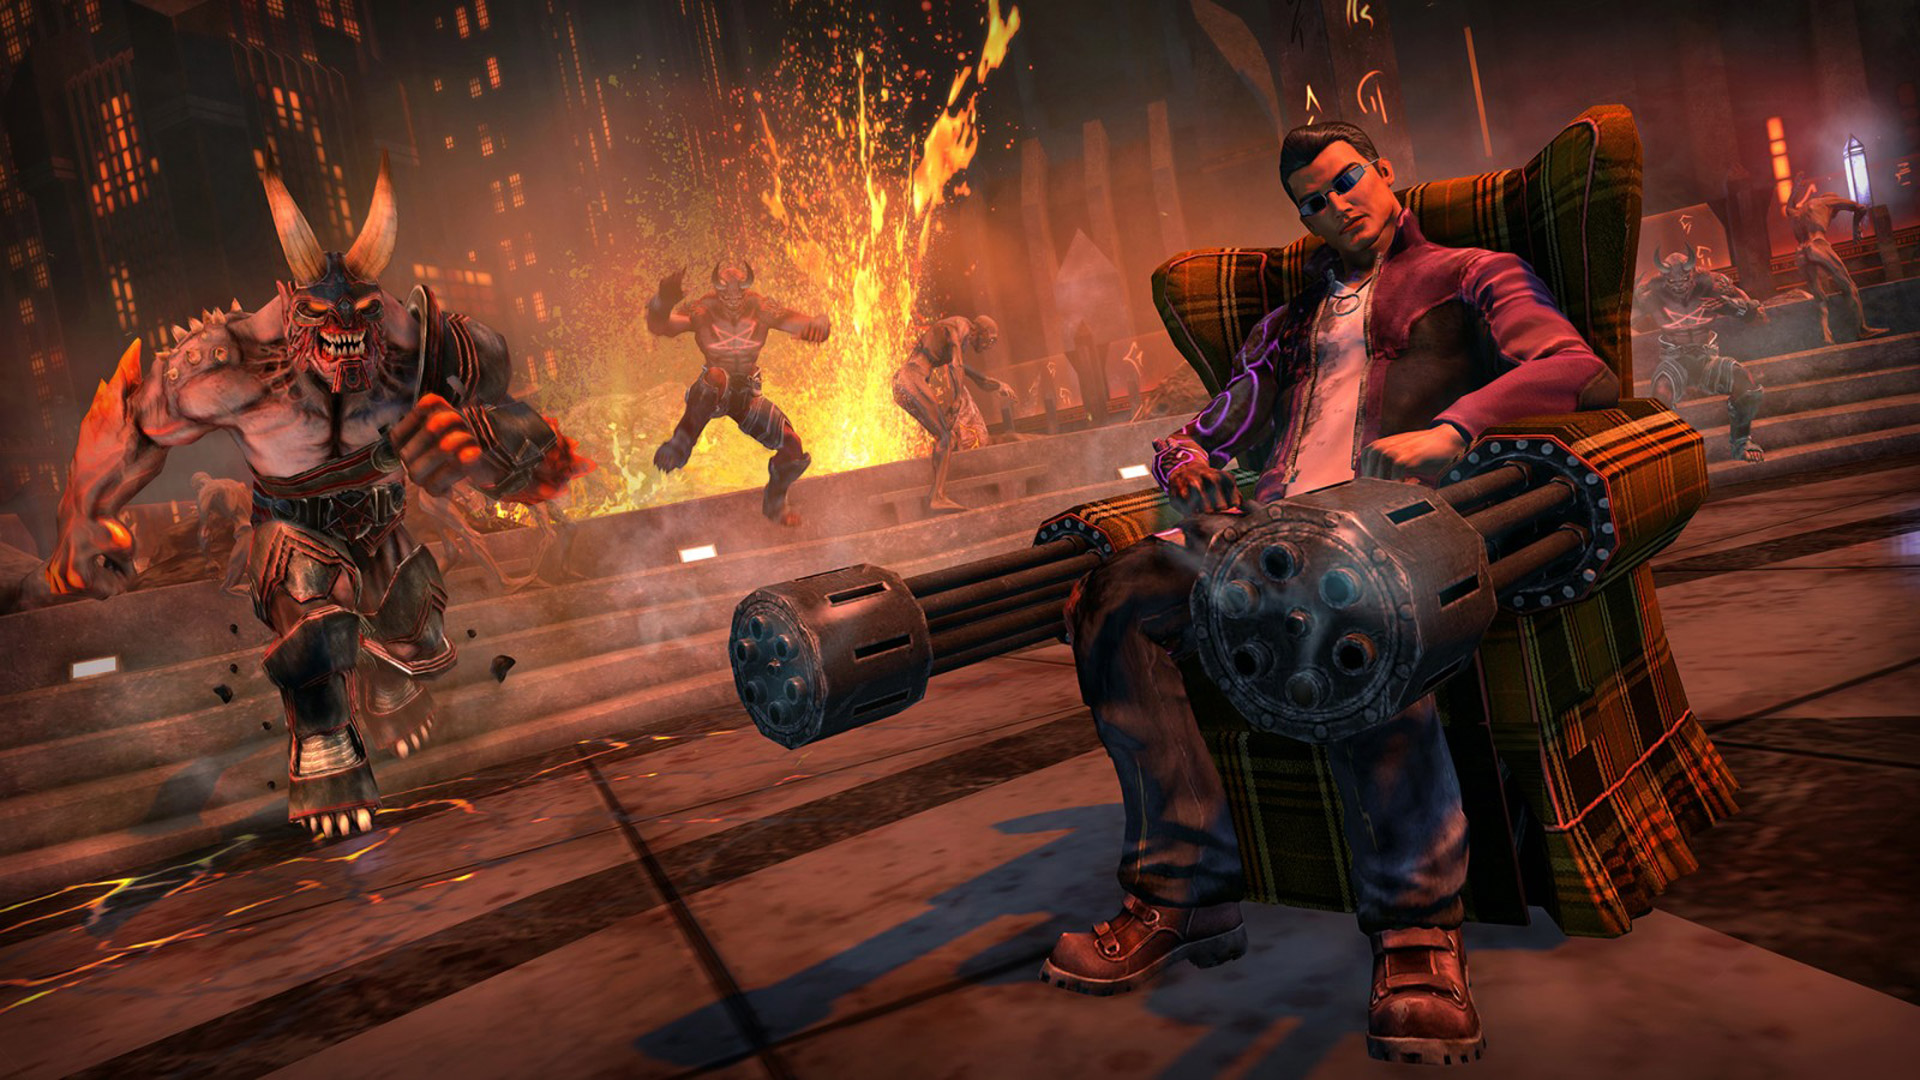 Free Saints Row: Gat Out of Hell Wallpaper in 1920x1080